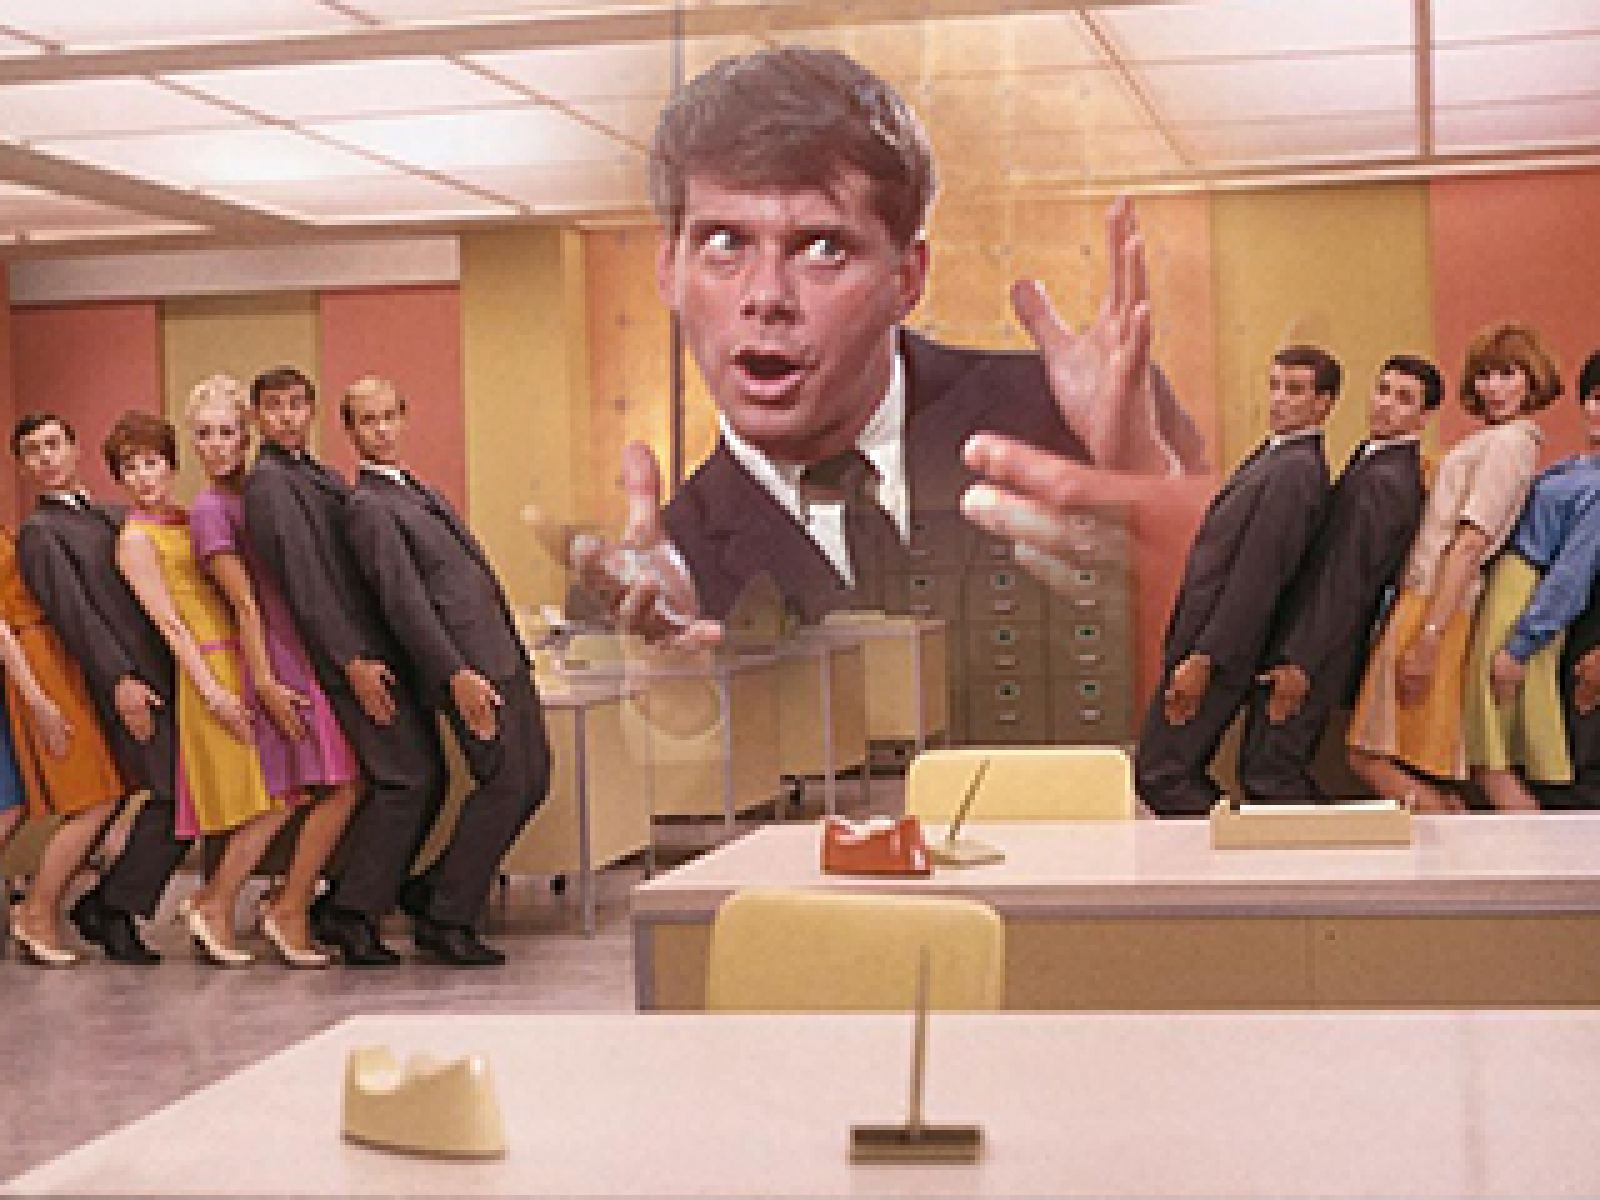 Main image for event titled HOW TO SUCCEED IN BUSINESS WITHOUT REALLY TRYING